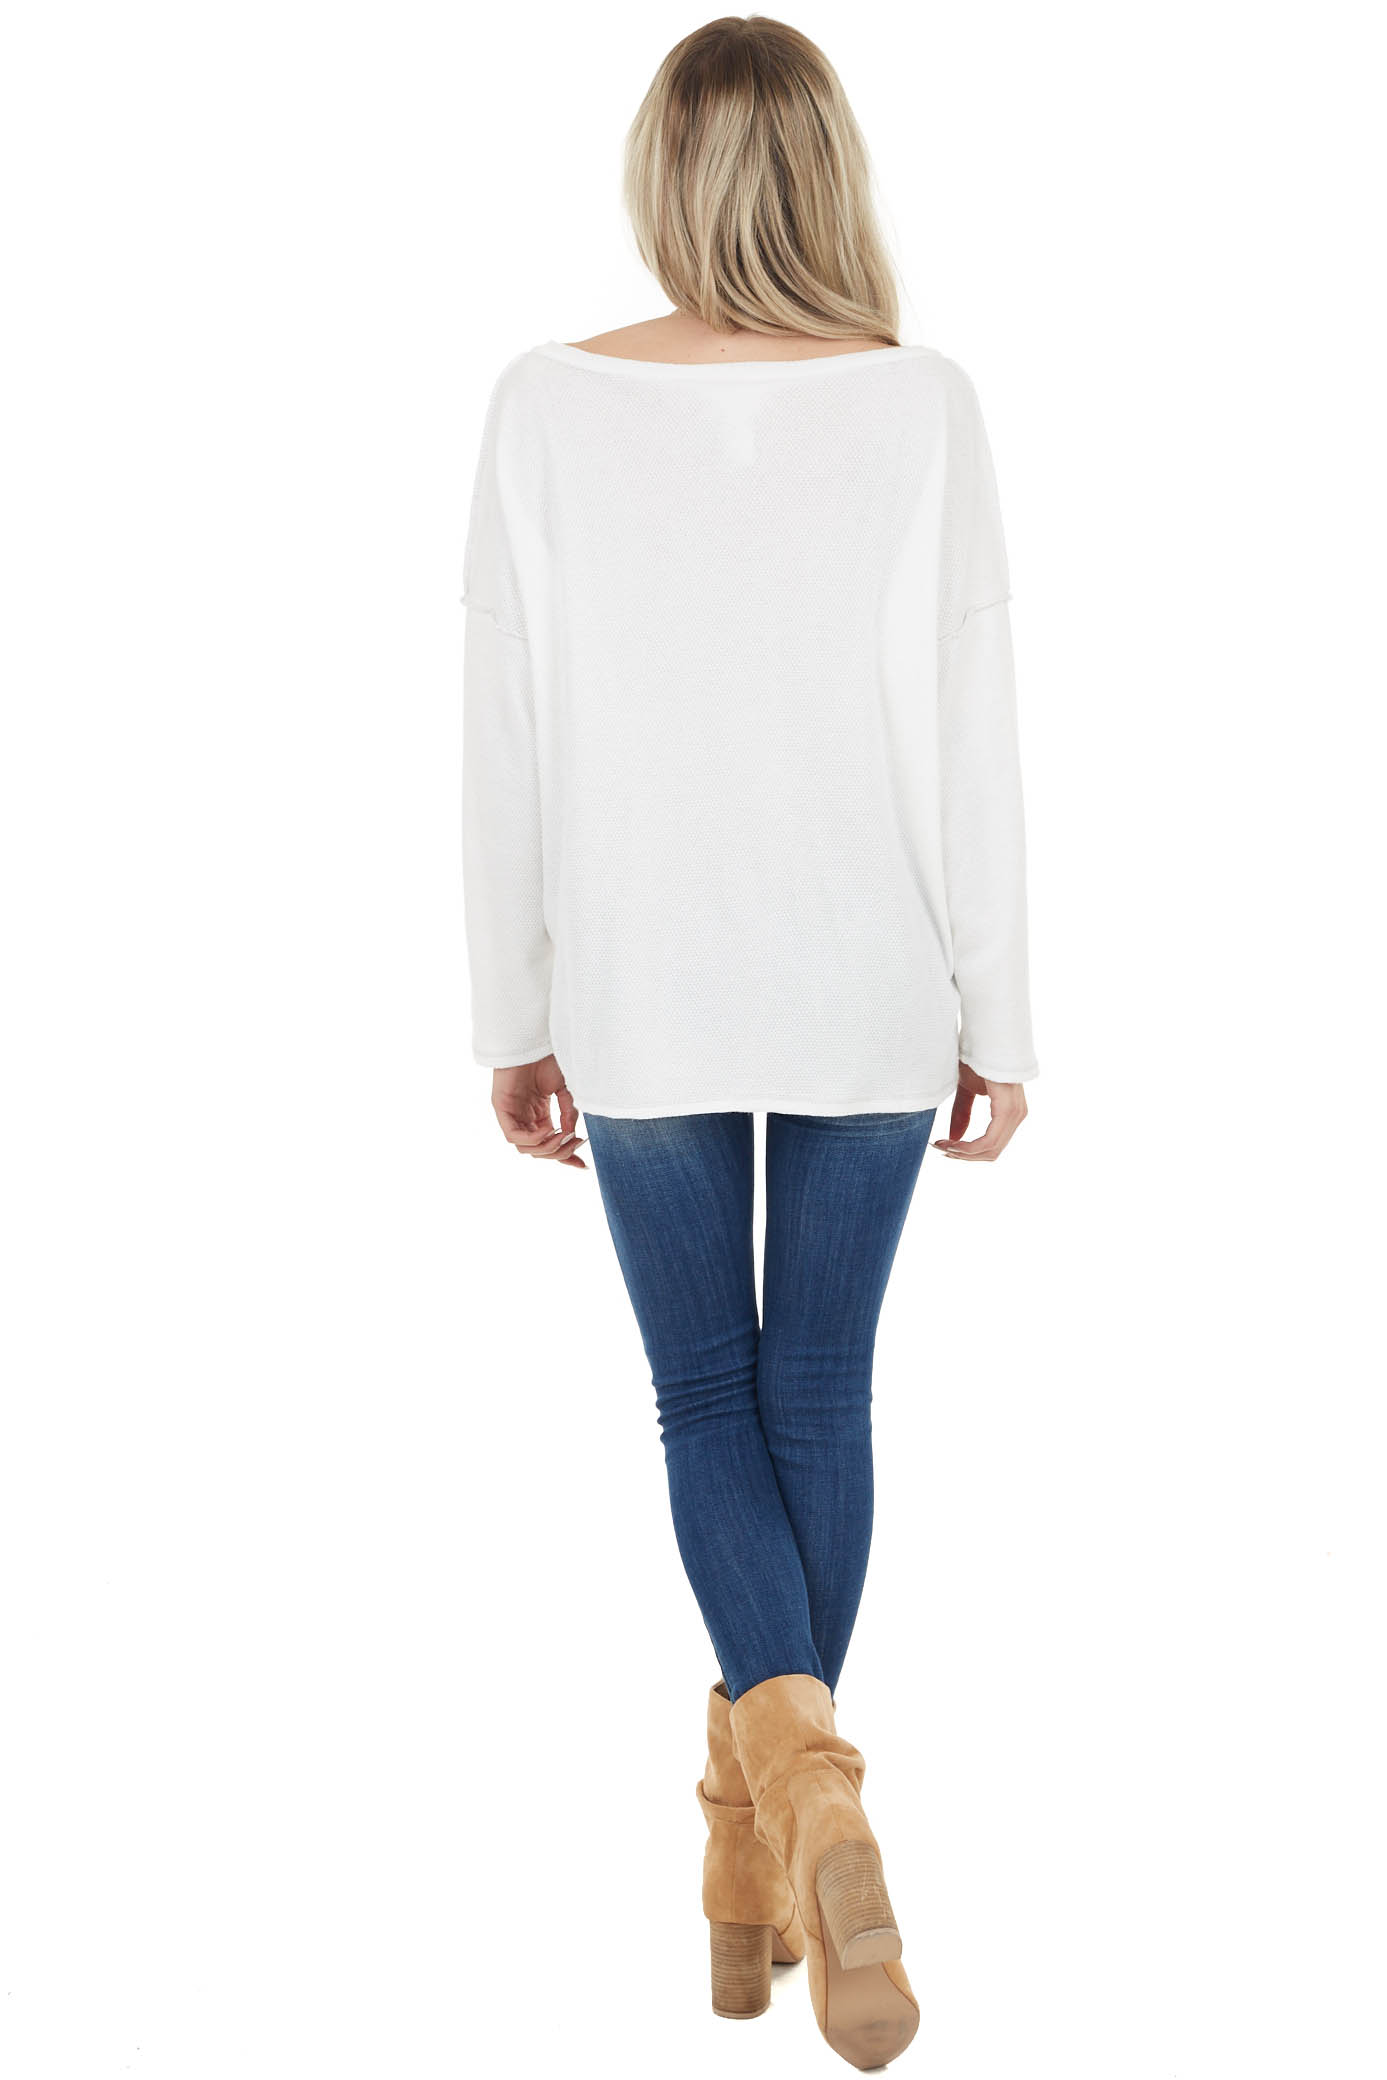 White Henley Top with Reversed Seam Details